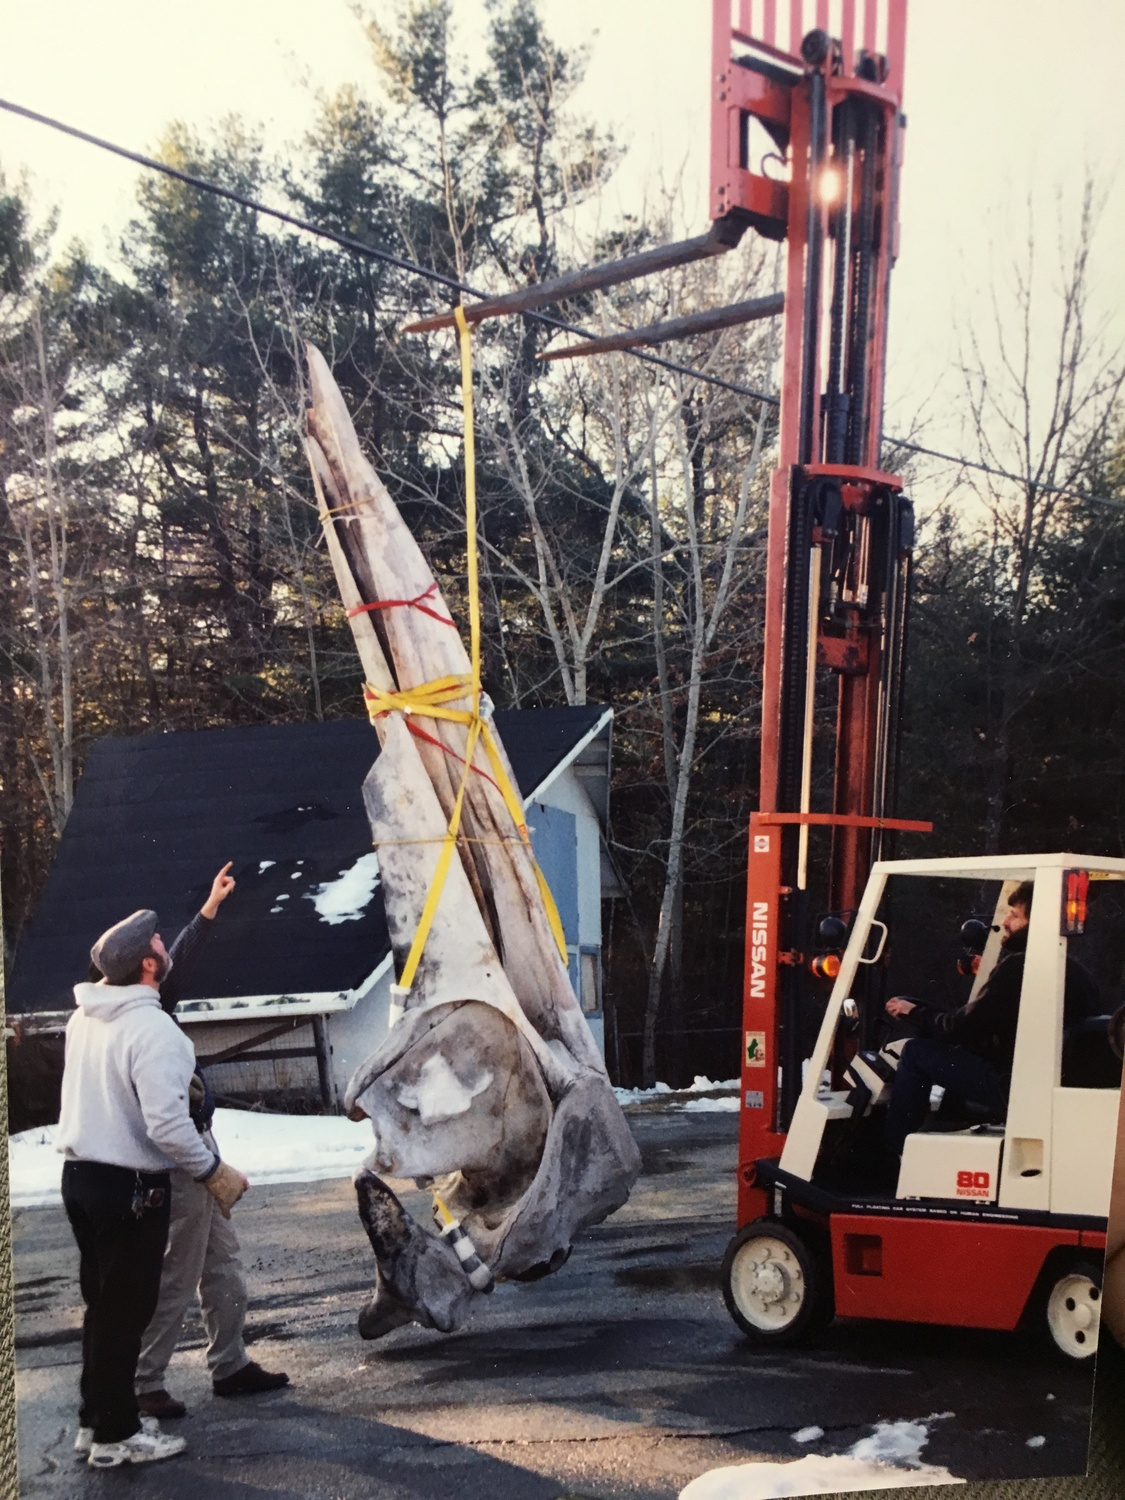 A whale skull being prepared for storage at Concord in the late 1990s.